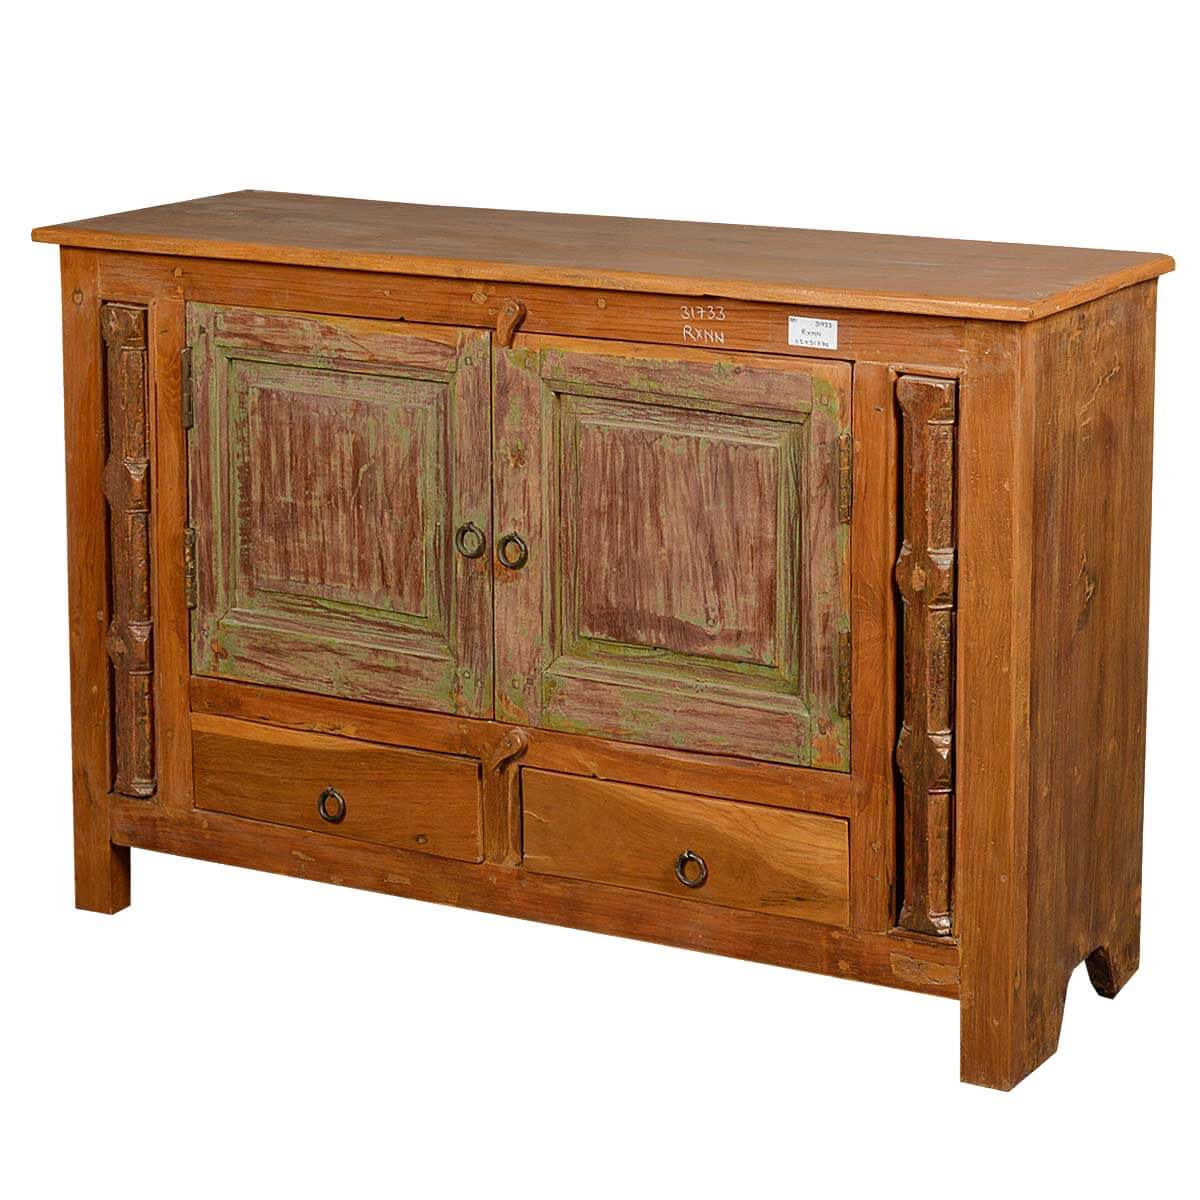 Rustic Reclaimed Wood Log Cabin Storage Accent Cabinet. Mission Style Chandelier. Lighted Letters. Mountain High Appliance. Double Vanity Cabinet. Utah Landscaping. Motorized Blackout Shades. Round Roof. Backyard Pavilion